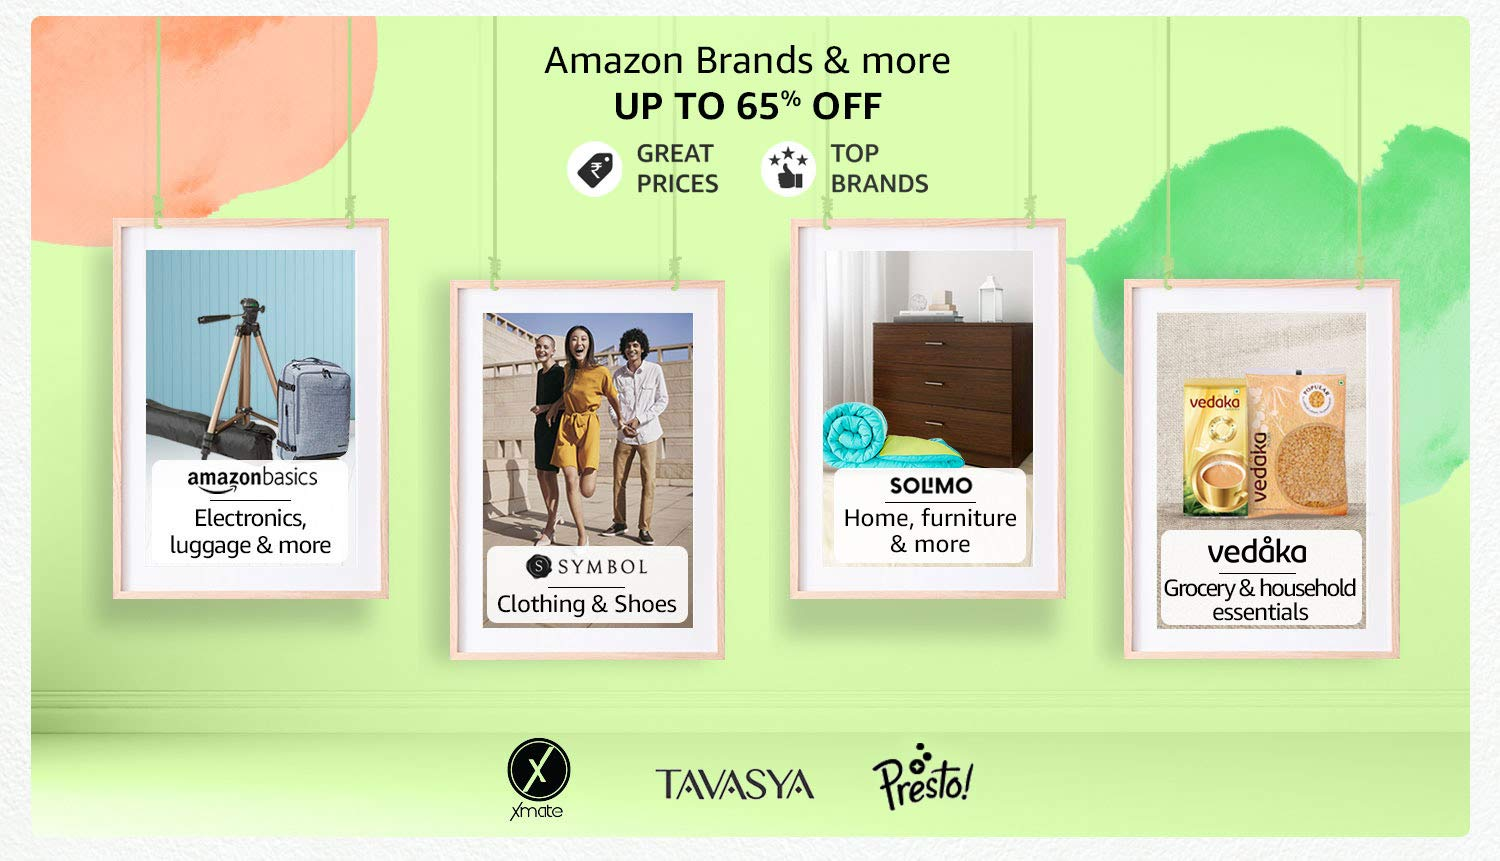 Up to 65% off | Amazon Brands & more